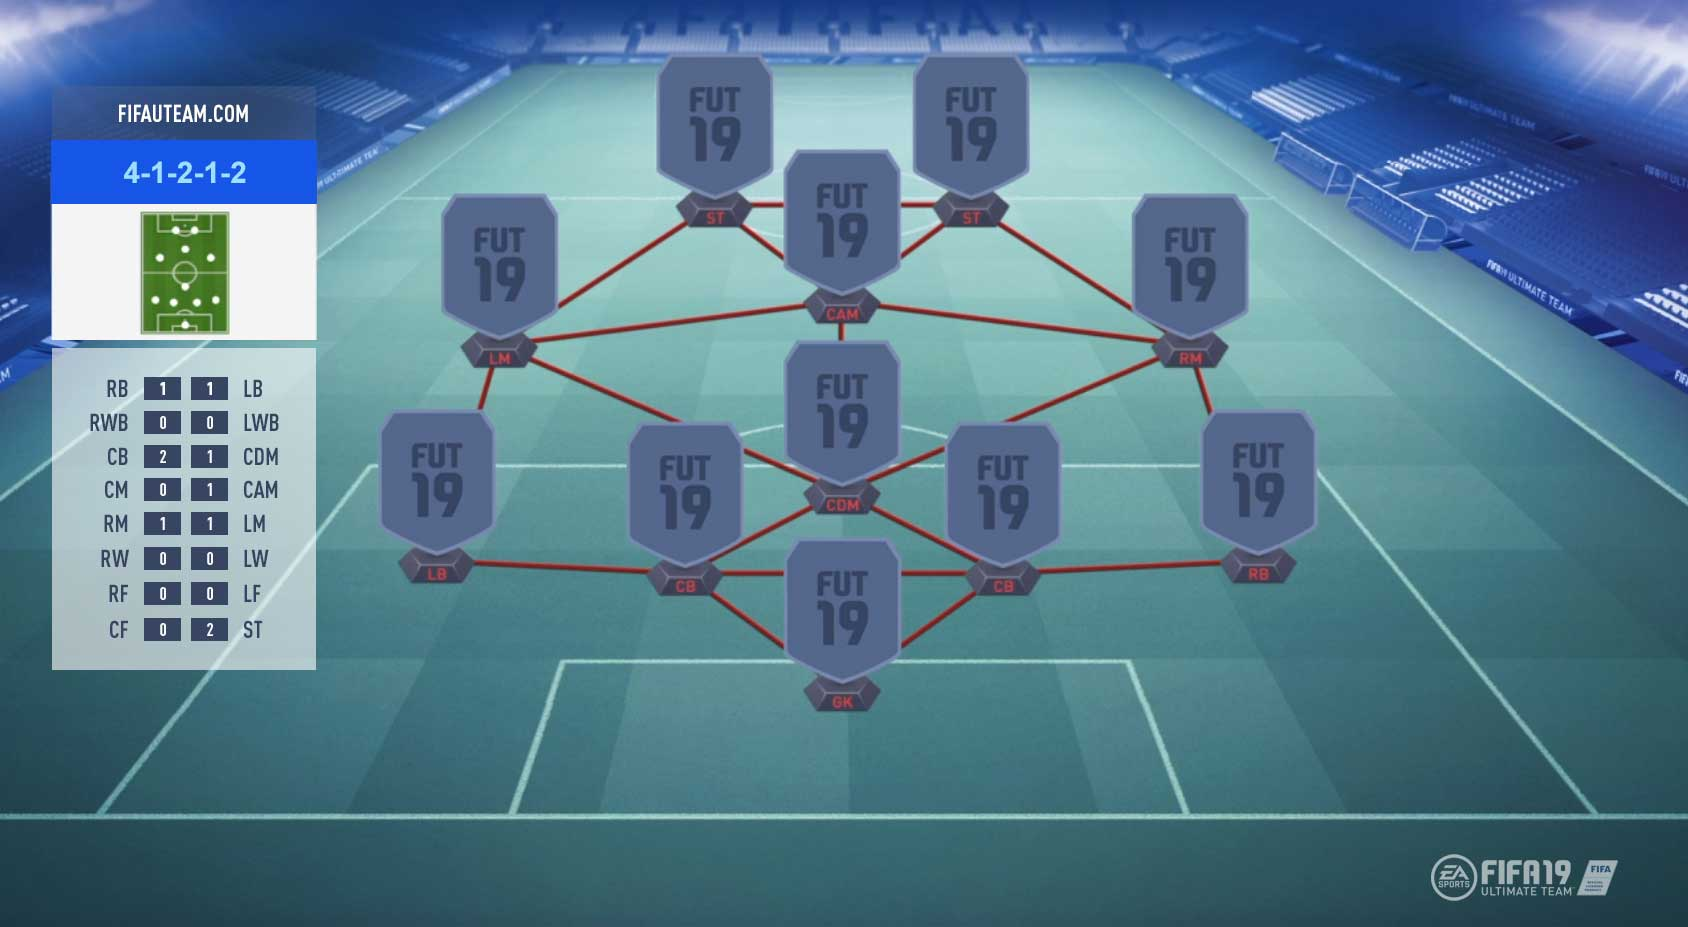 FIFA 19 Formations Guide – 4-1-2-1-2